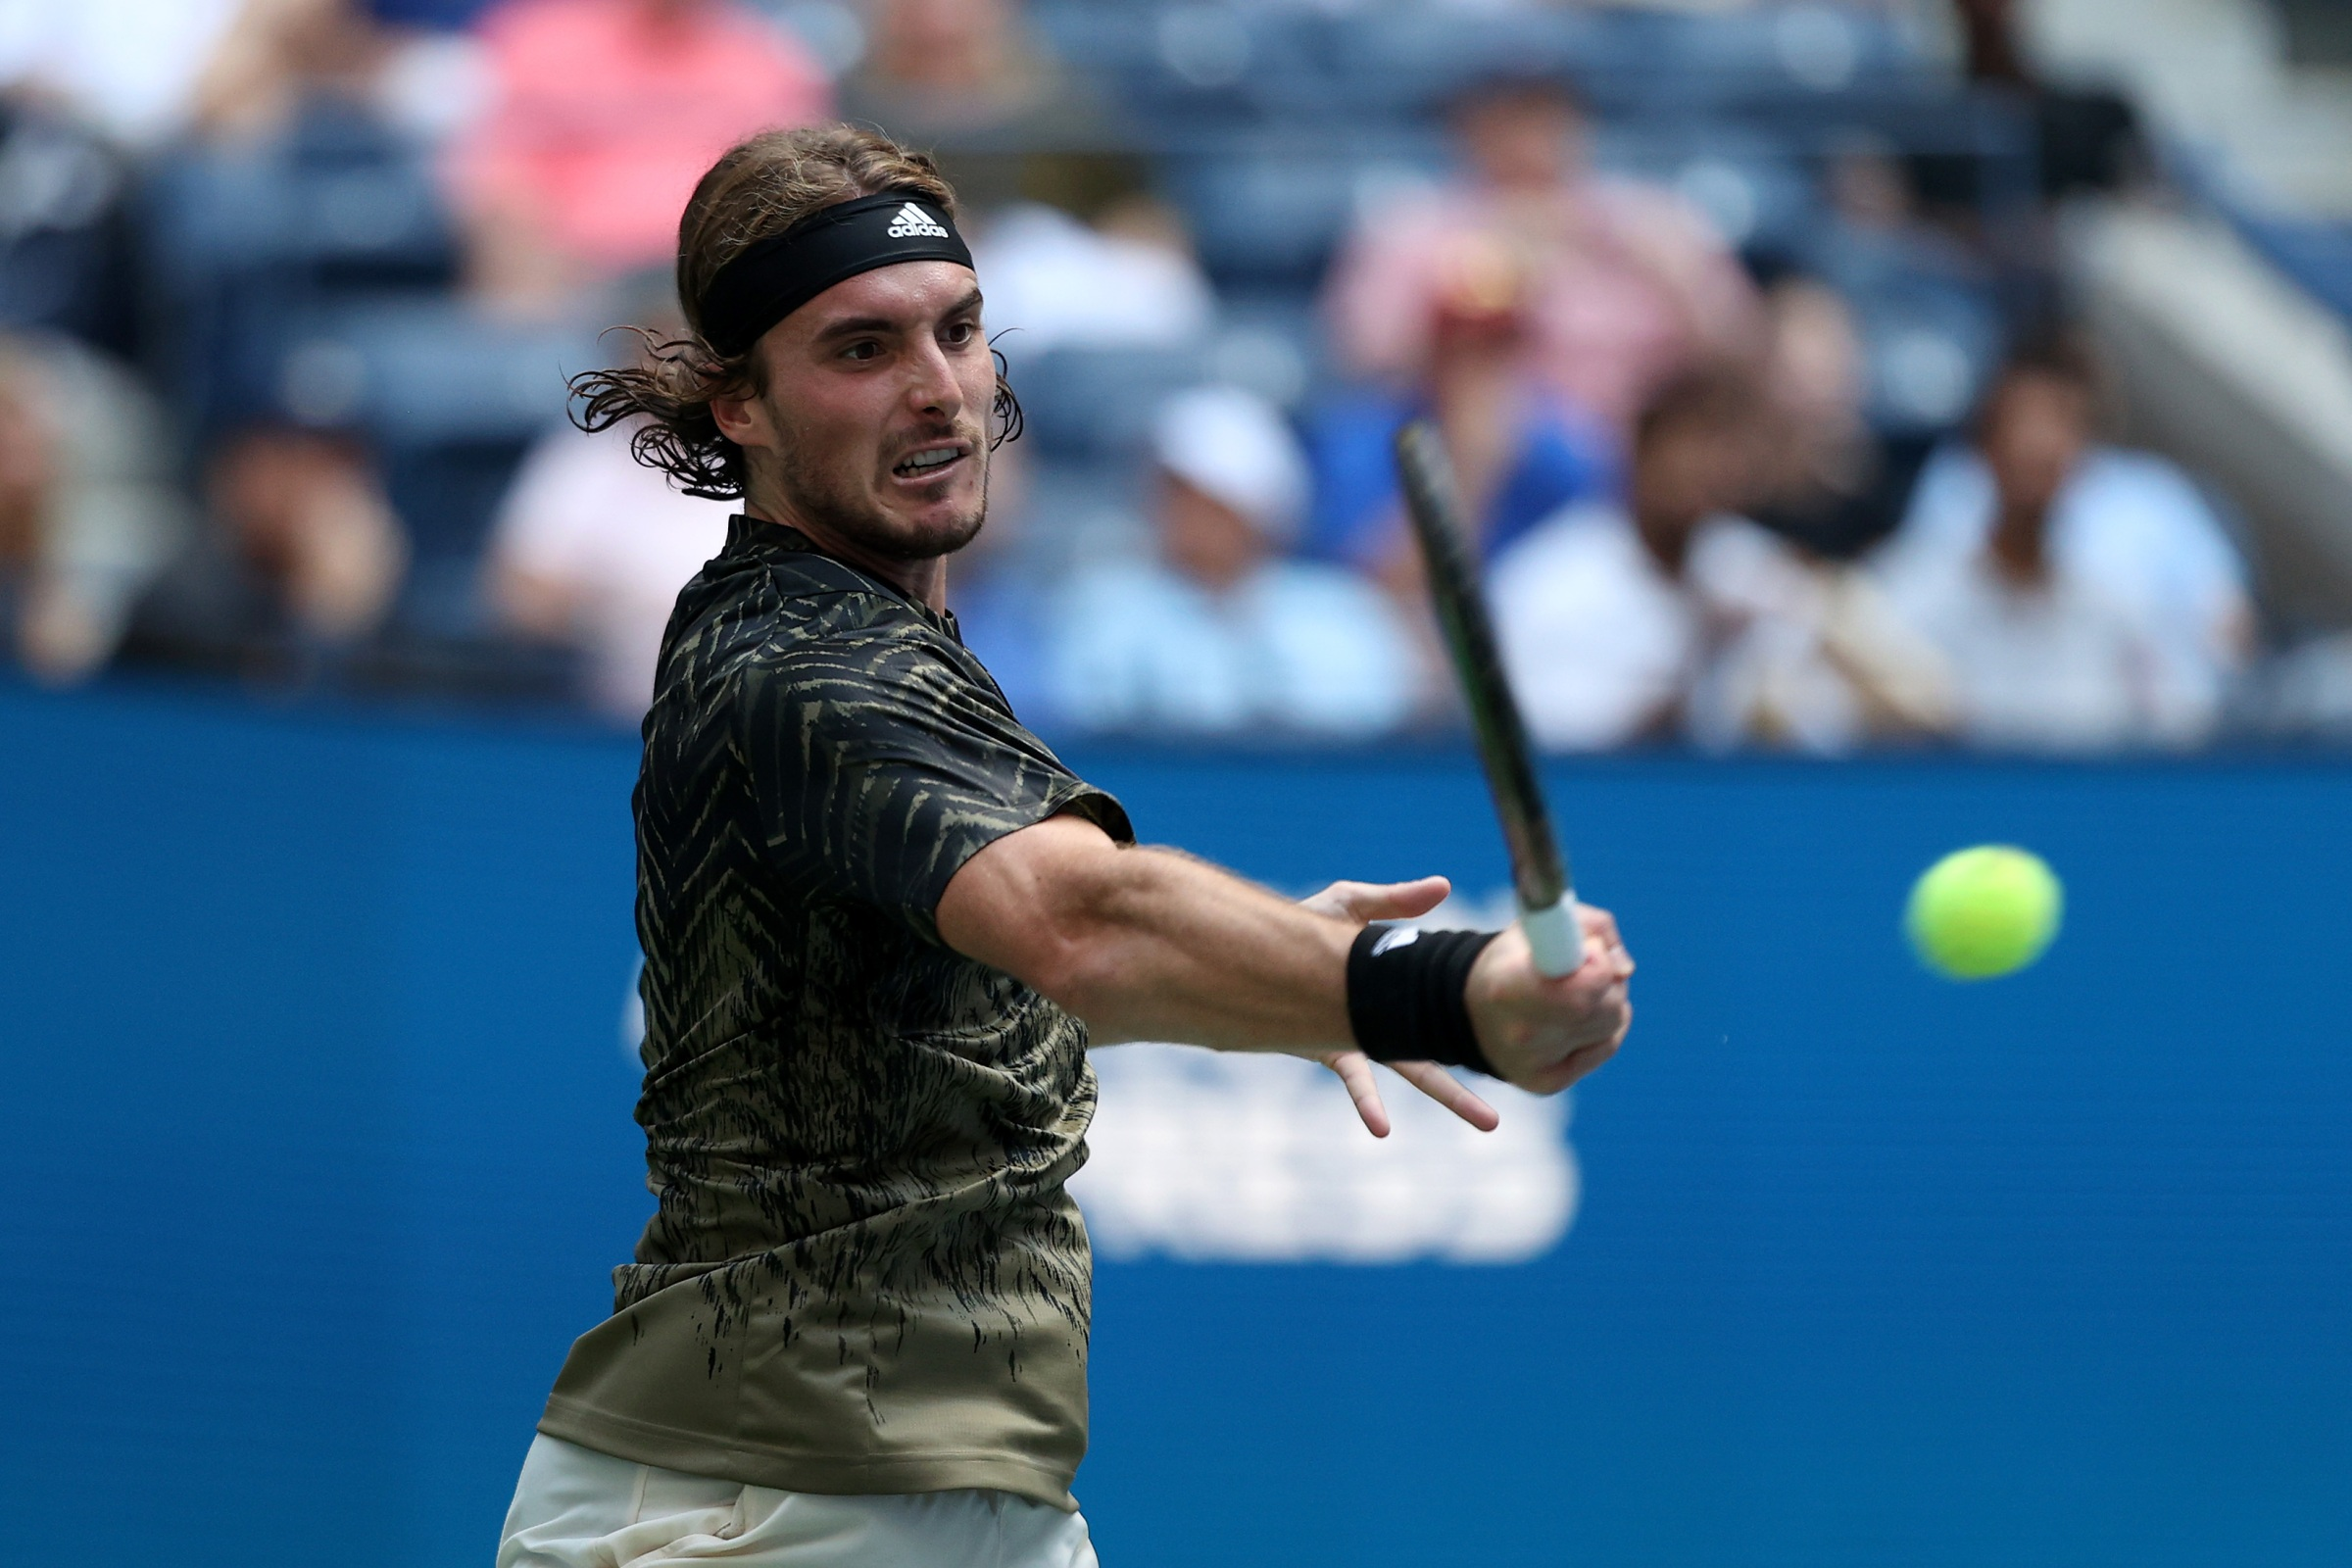 NEW YORK, NEW YORK - AUGUST 30: Stefanos Tsitsipas of Greece returns a shot against Andy Murray of United Kingdom during their men's singles first round match on Day One of the 2021 US Open at the Billie Jean King National Tennis Center on August 30, 2021 in the Flushing neighborhood of the Queens borough of New York City. (Photo by Elsa/Getty Images)